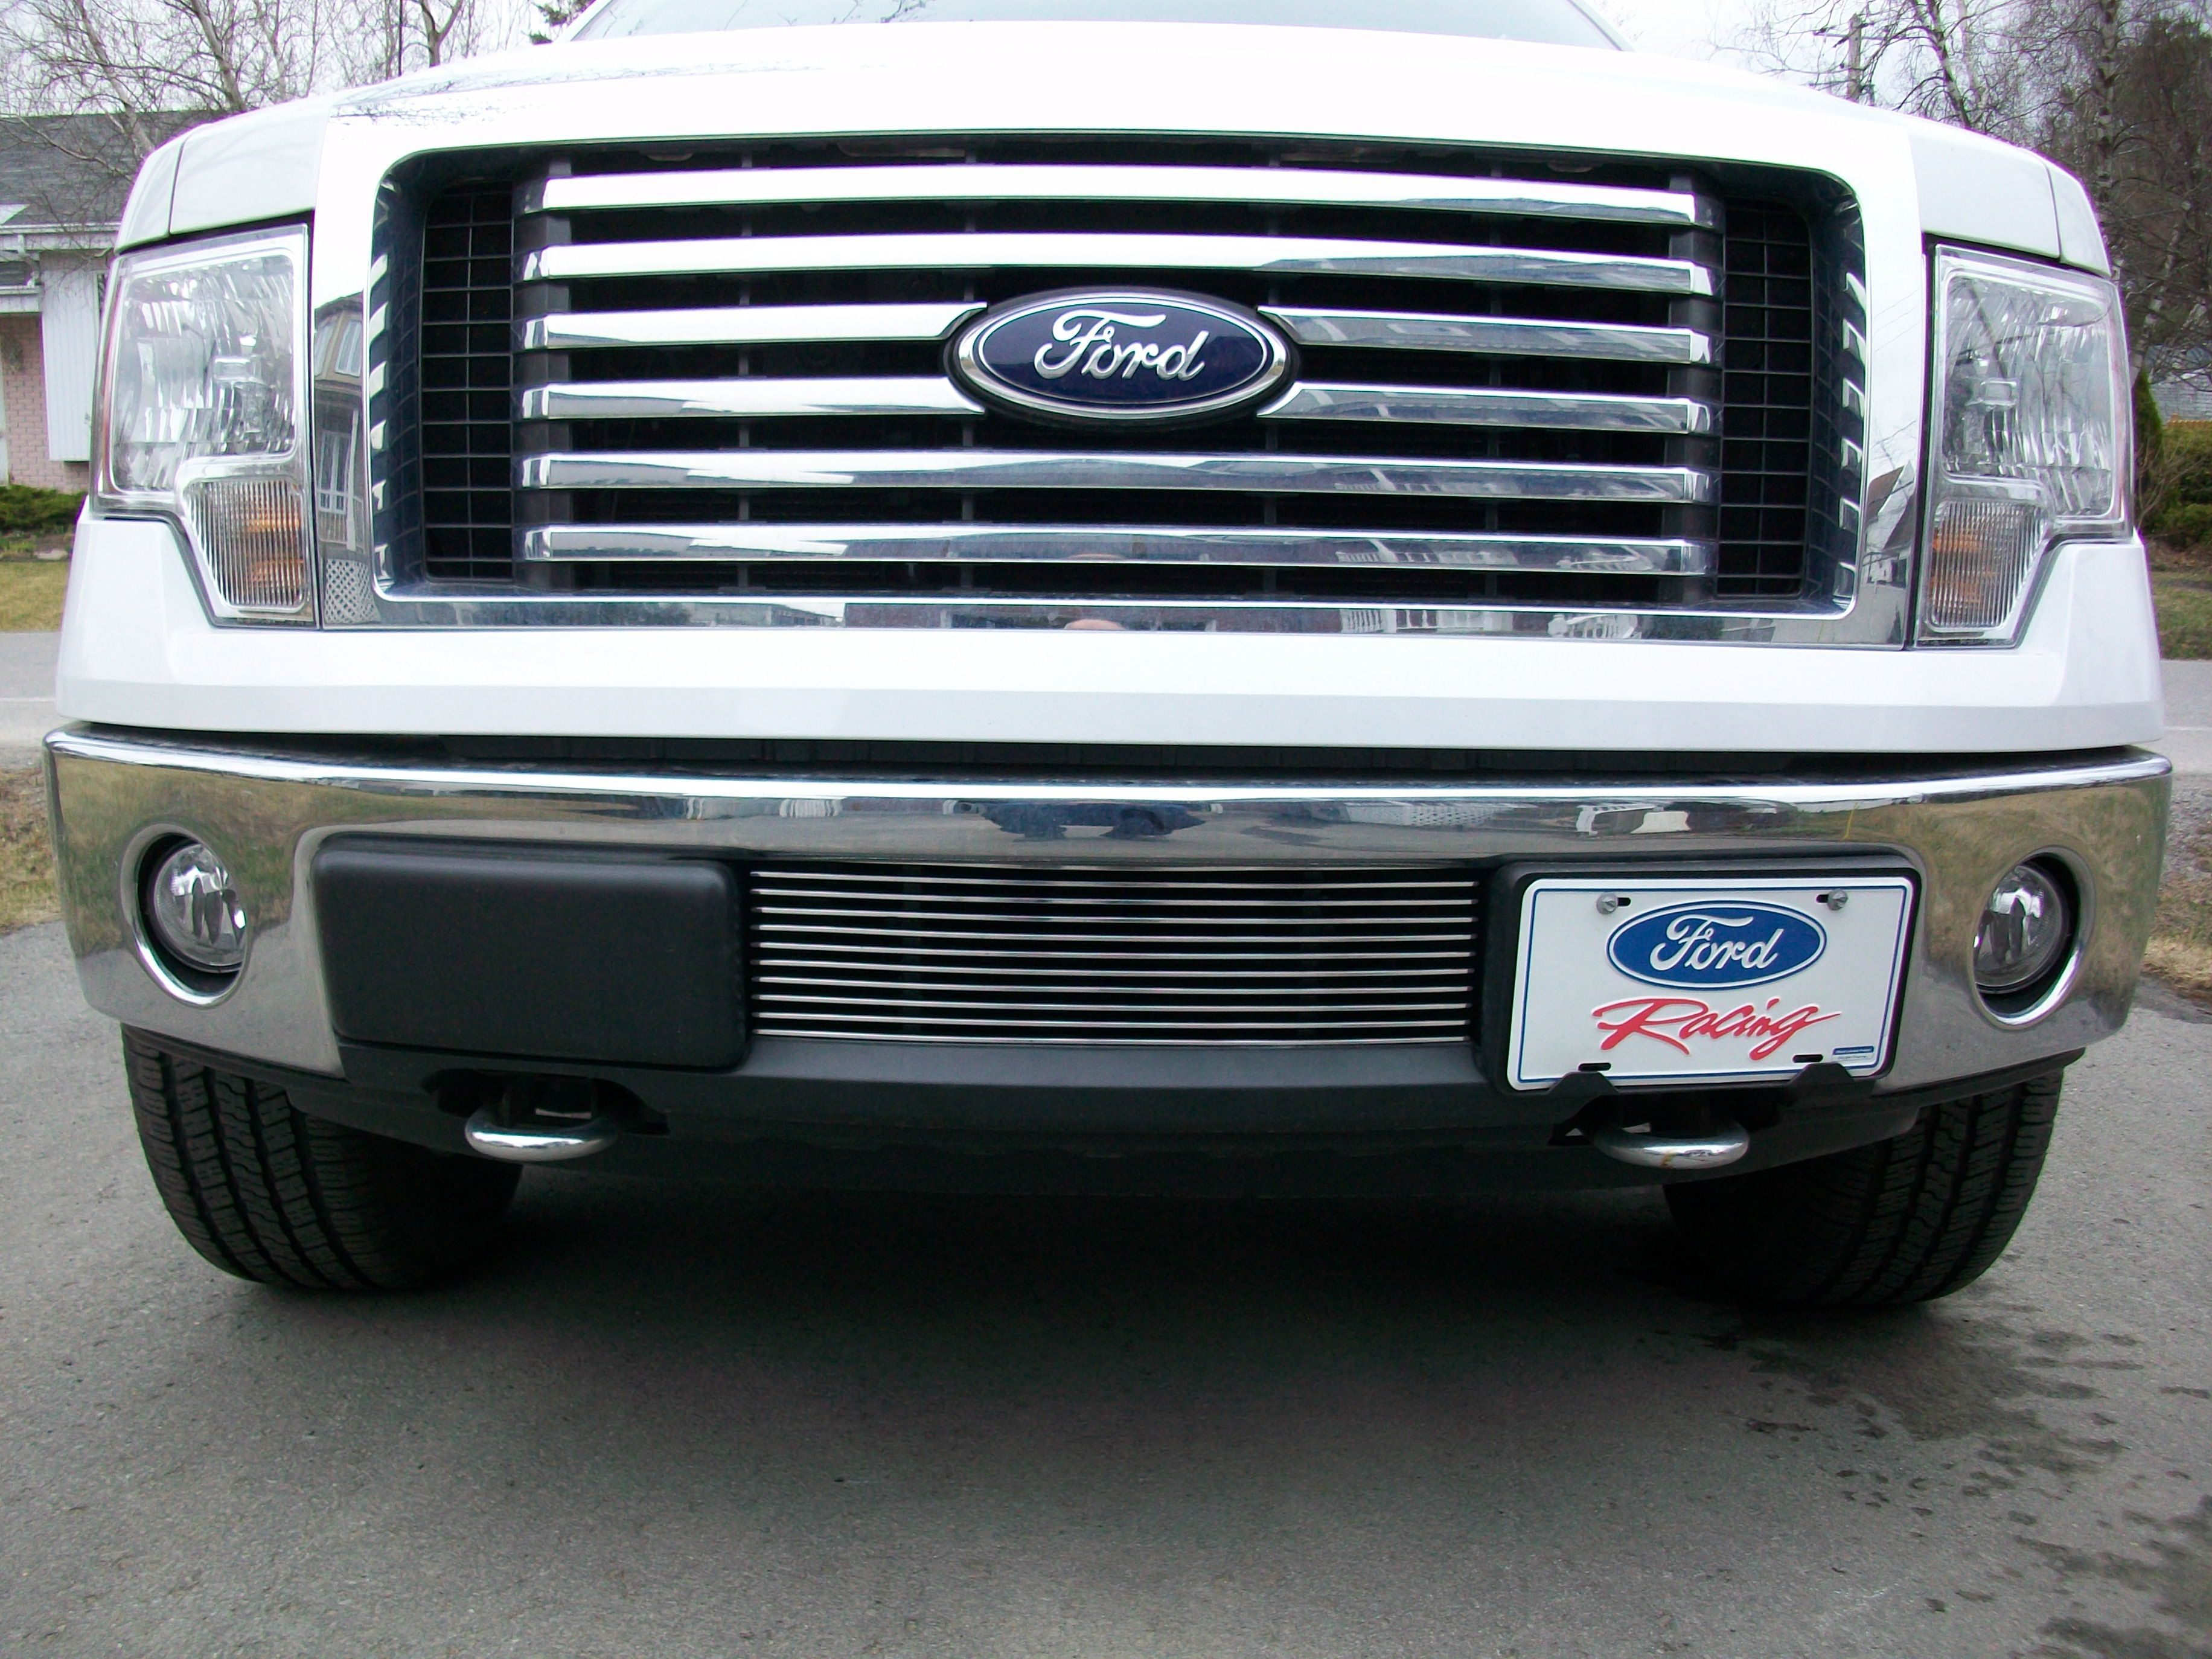 Ford f 150 with genx trims polished lower billet grille installed